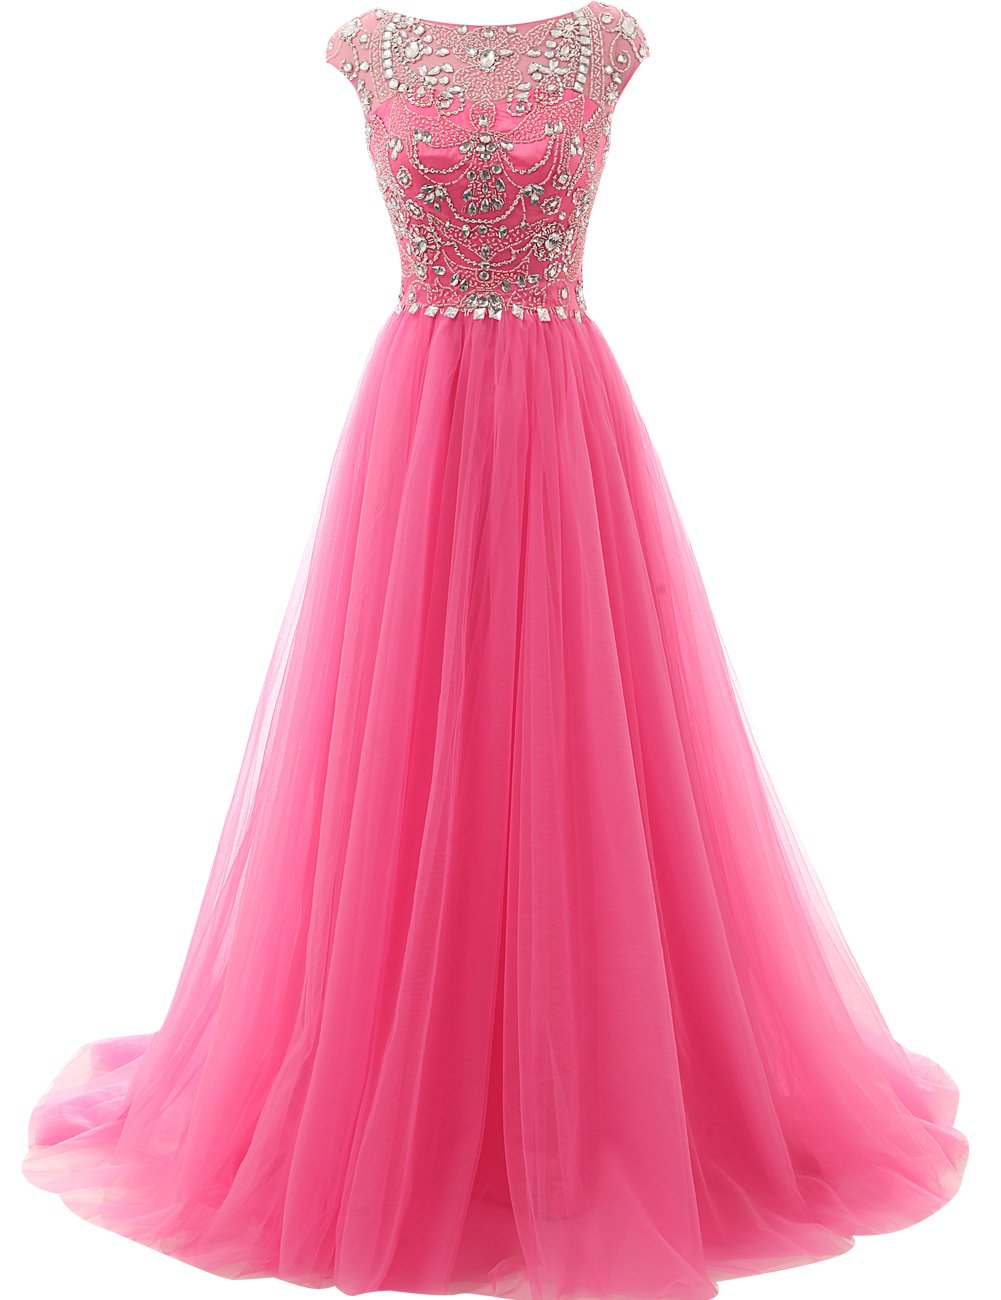 JAEDEN Crystal Evening Prom Dresses Long Quinceanera Dress Wedding Gown Hot Pink US22W